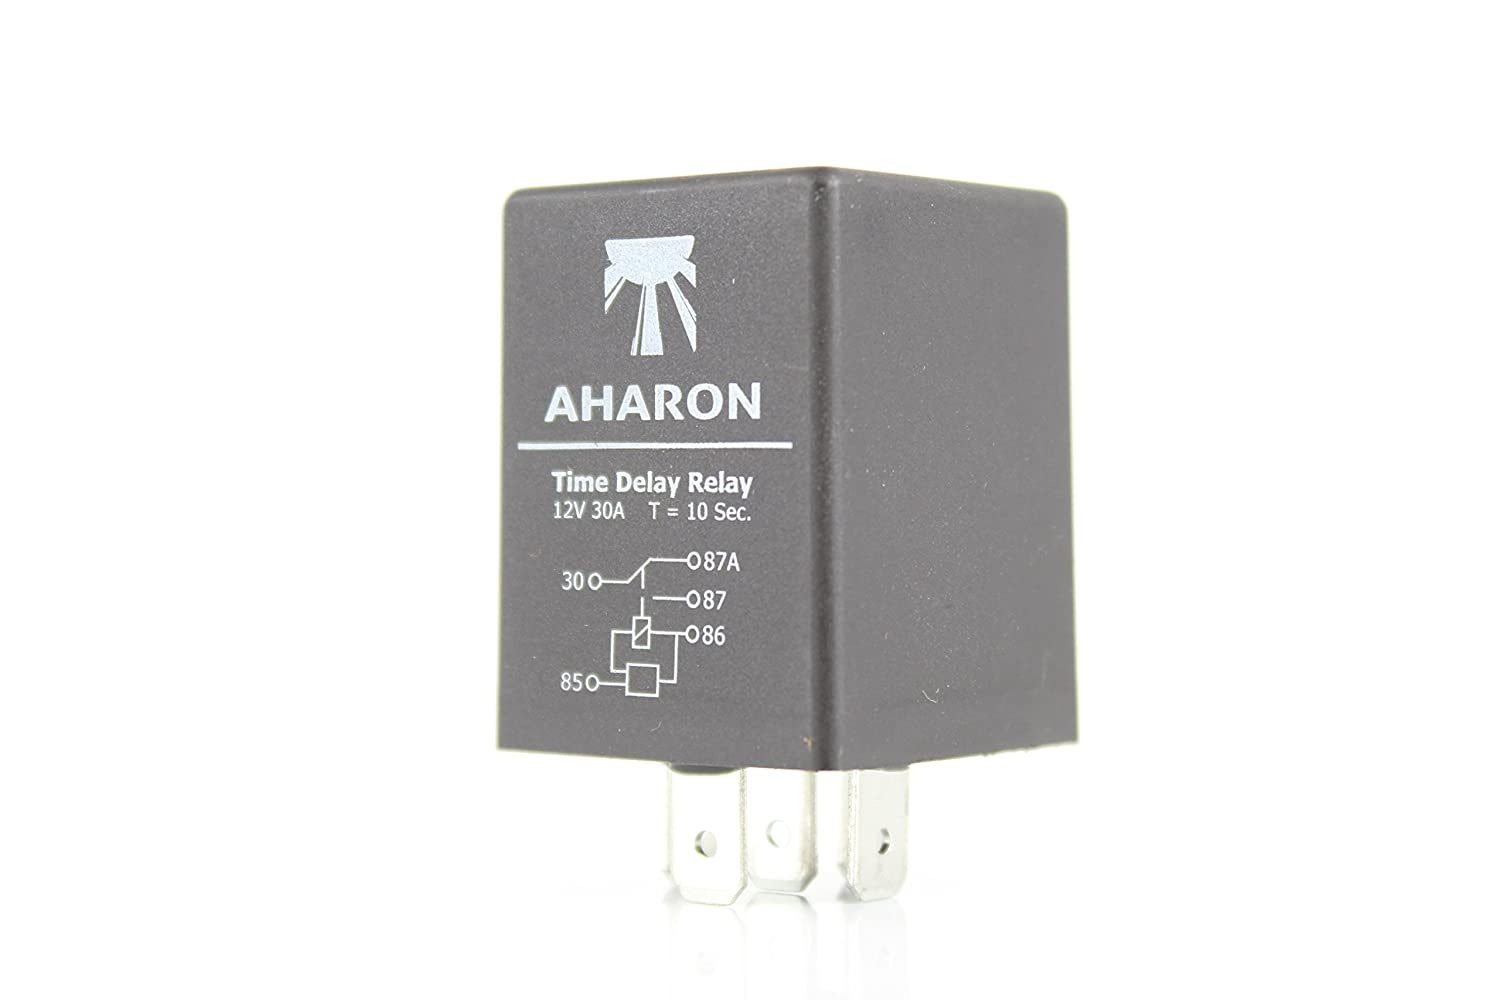 Time Delay Relay 10 seconds 5 pin 12V 30A 5 pin SPDT Aharon